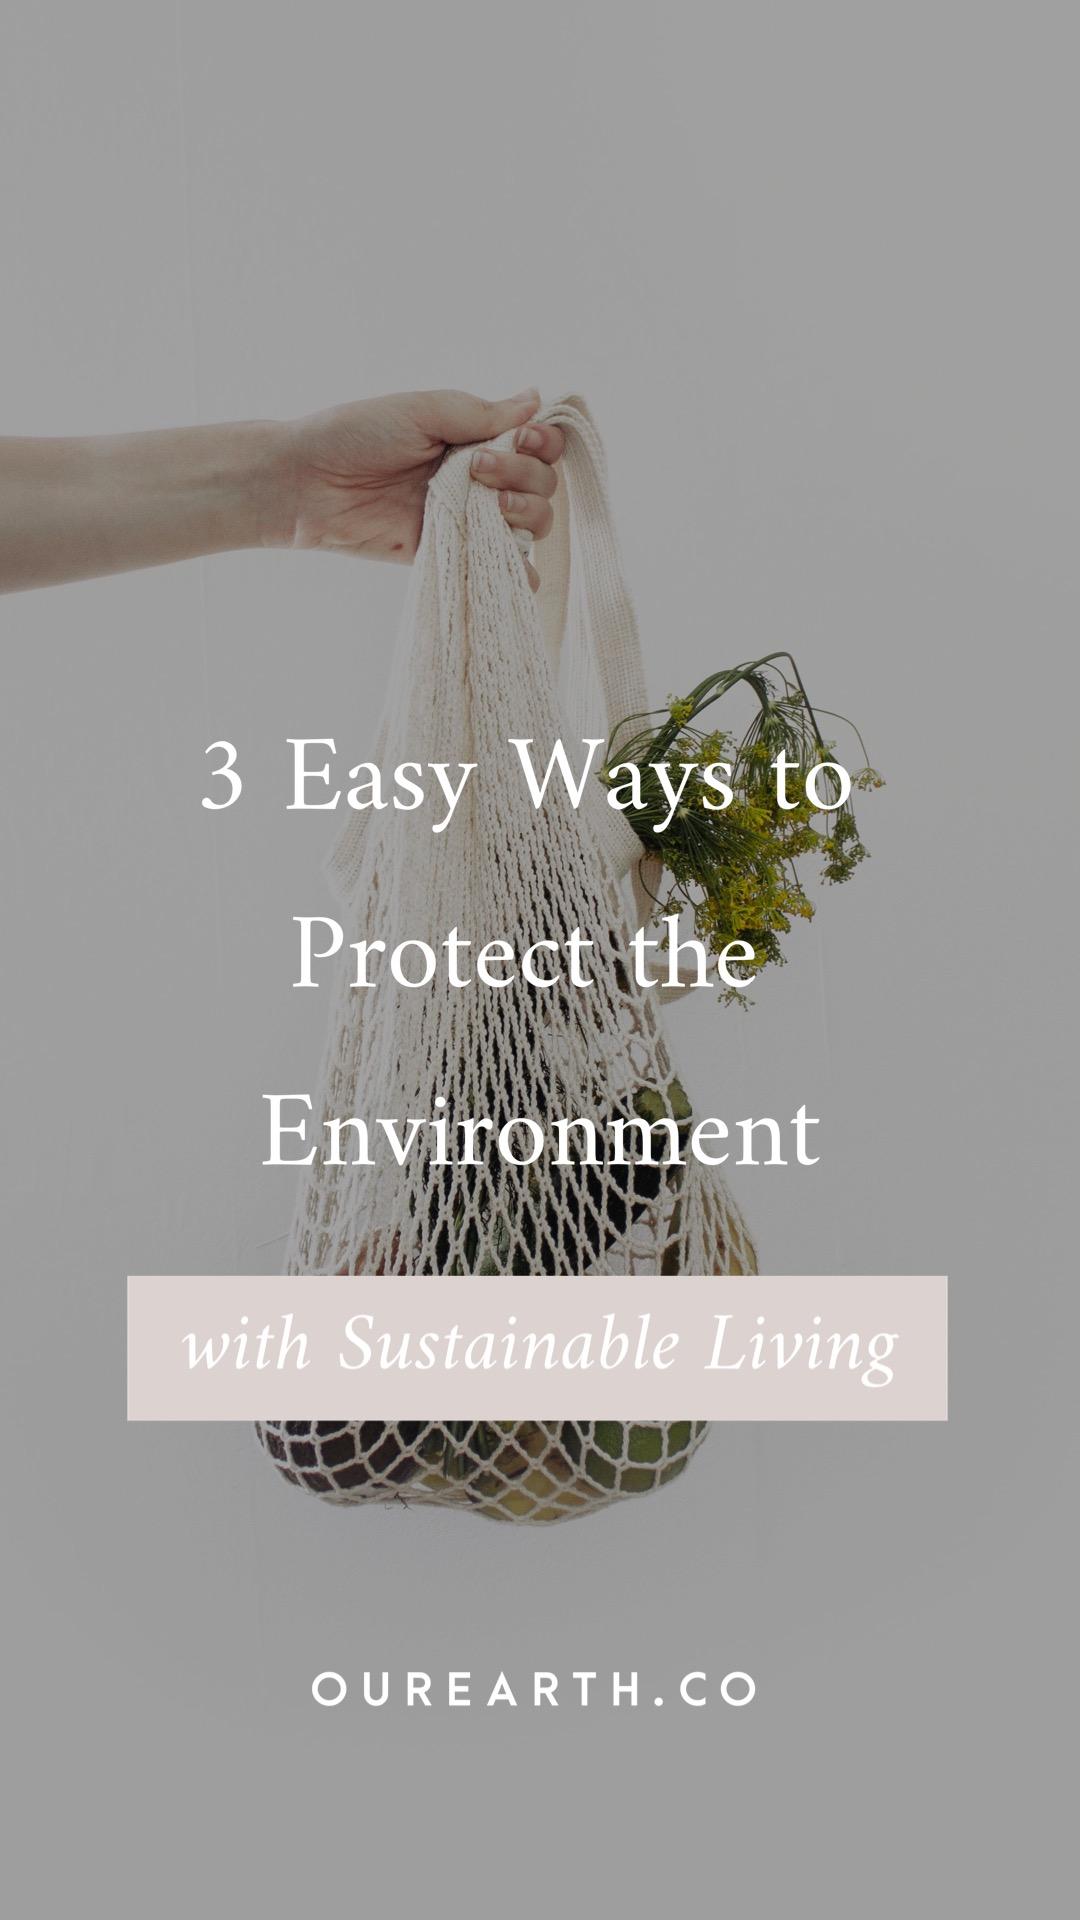 3 Easy Ways to Protect the Environment with Sustainable Living